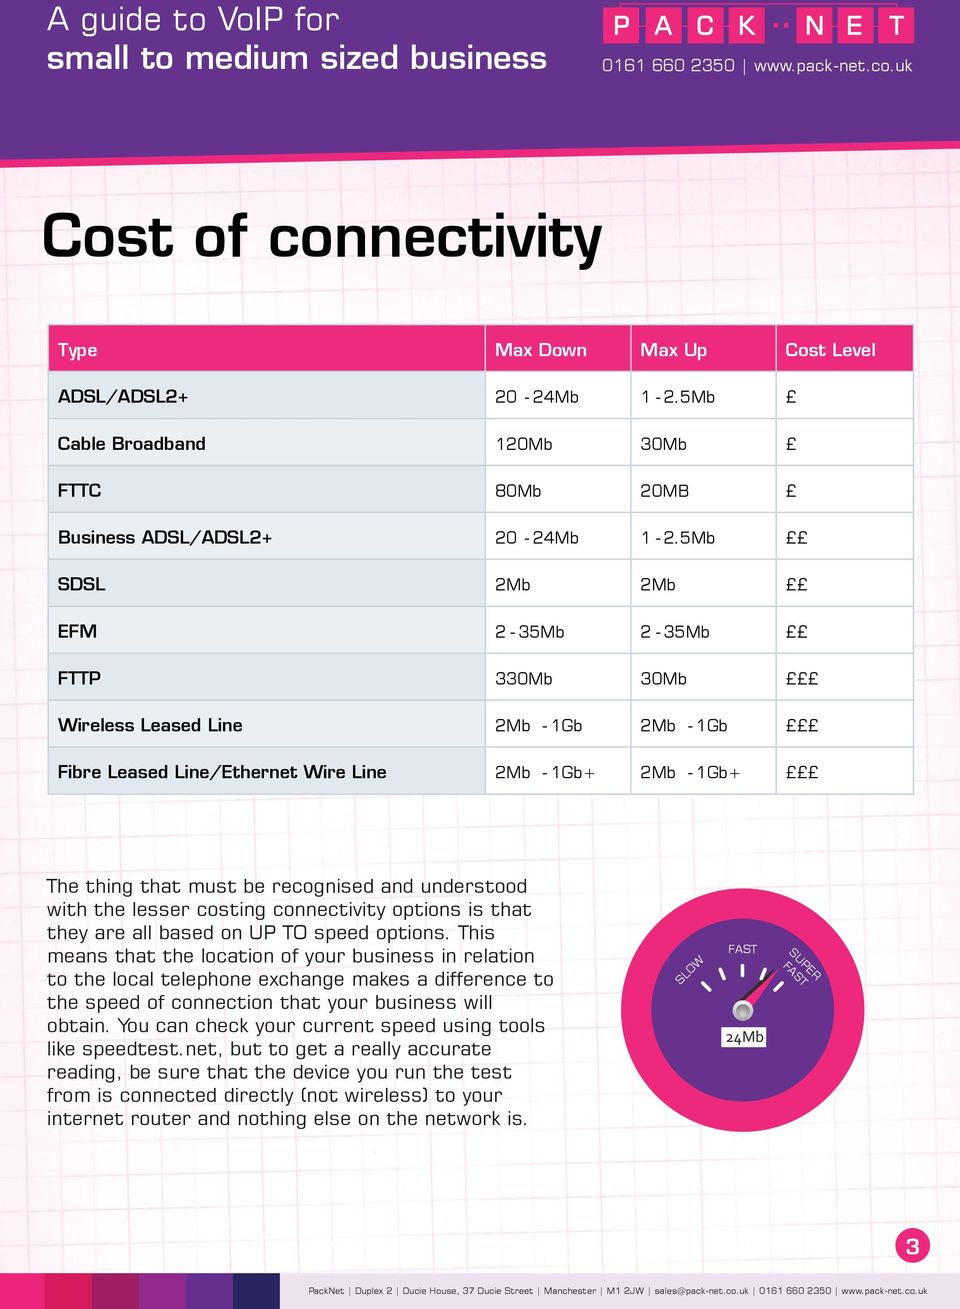 with the lesser costing connectivity options is that they are all based on UP TO speed options.